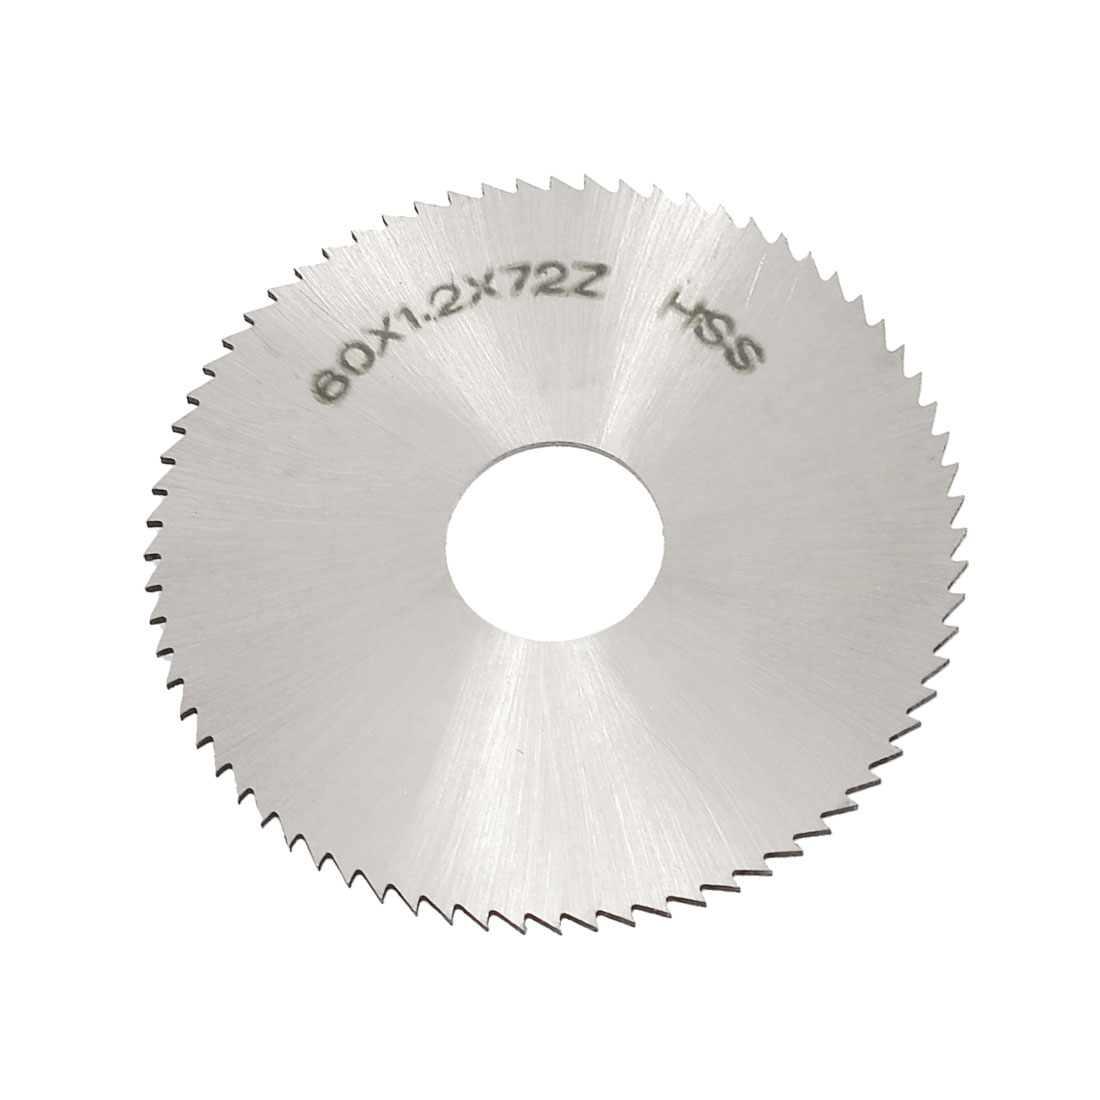 Uxcell 60mm OD 1.2mm Thickness 72T HSS Circular Slitting Saw